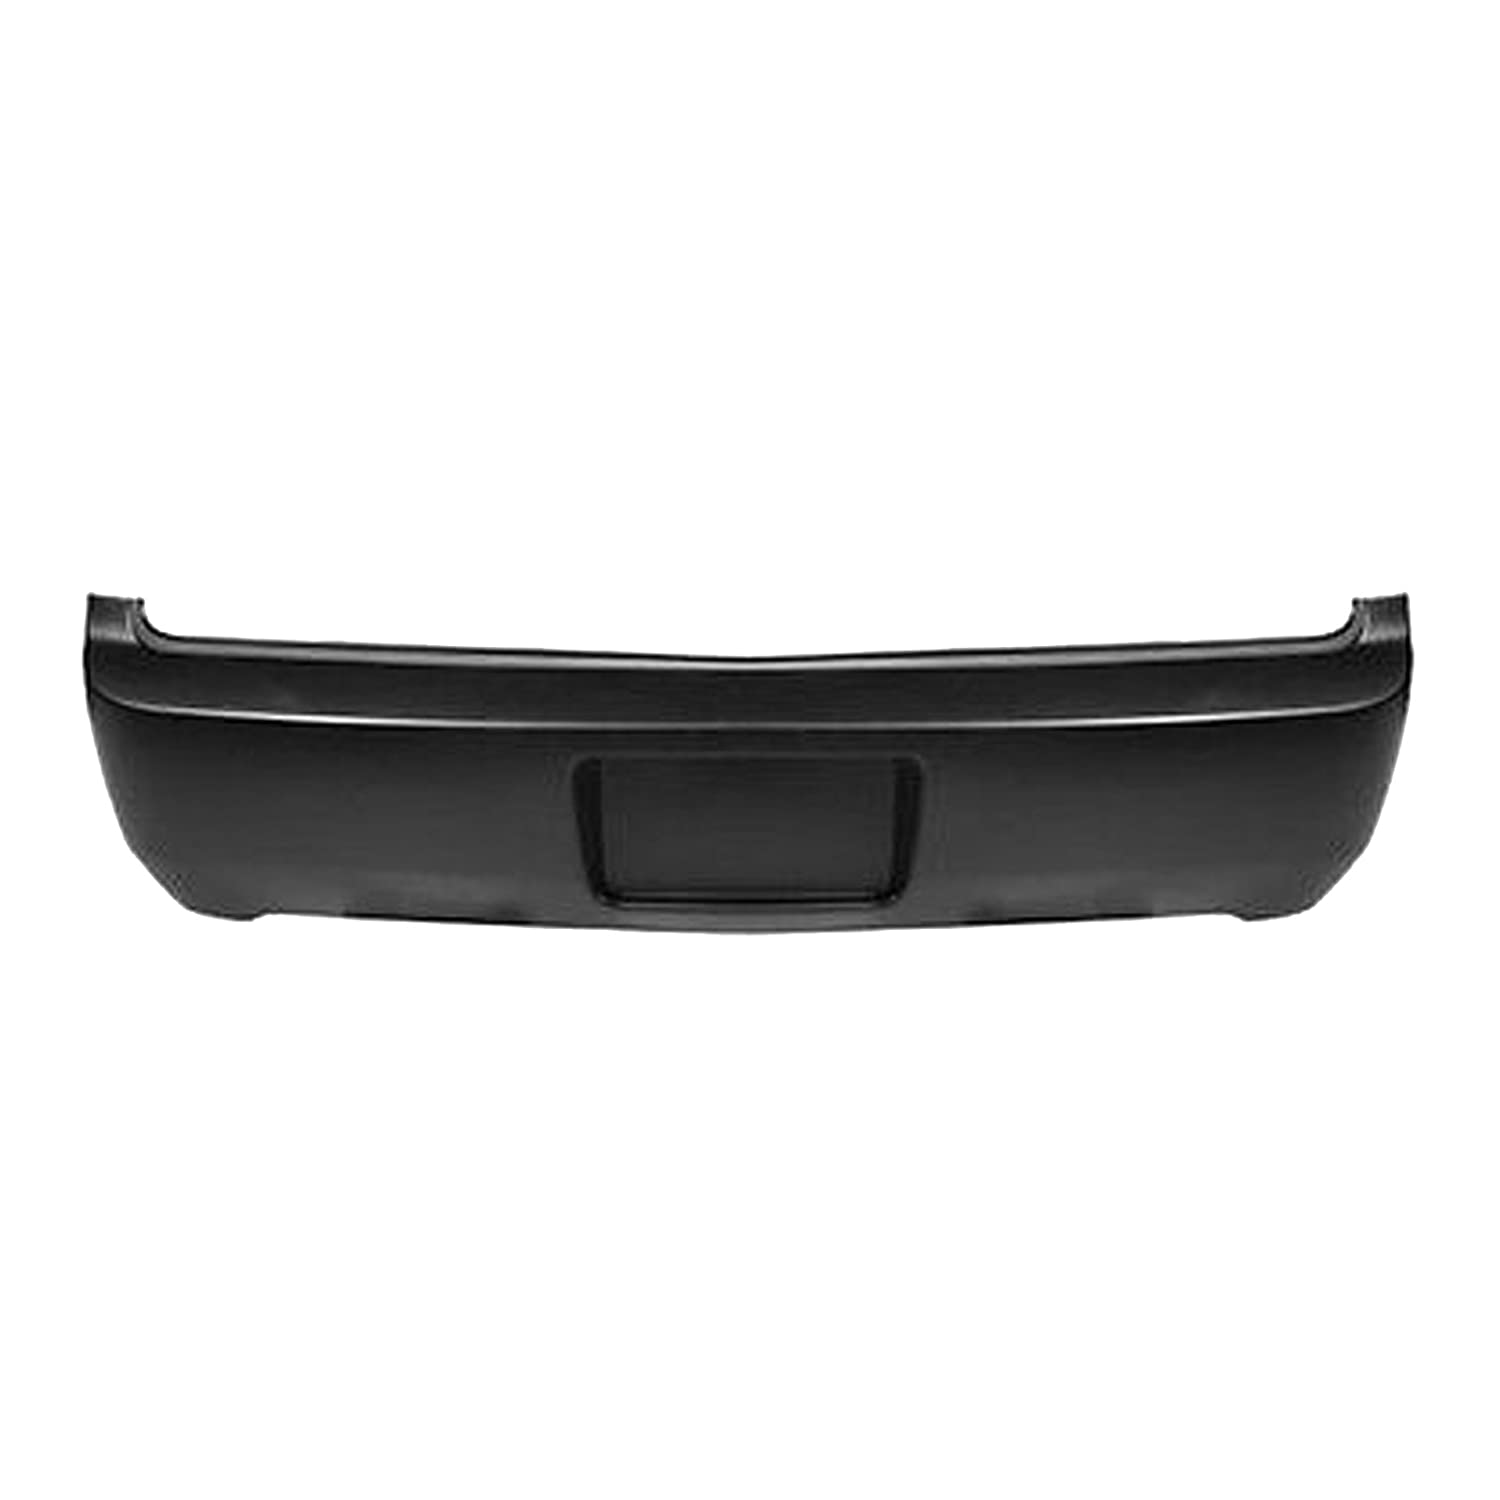 Painted to Match FO1100387 MBI AUTO Rear Bumper Cover for 2005-2009 Ford Mustang GT 6 Cylinder 05-09